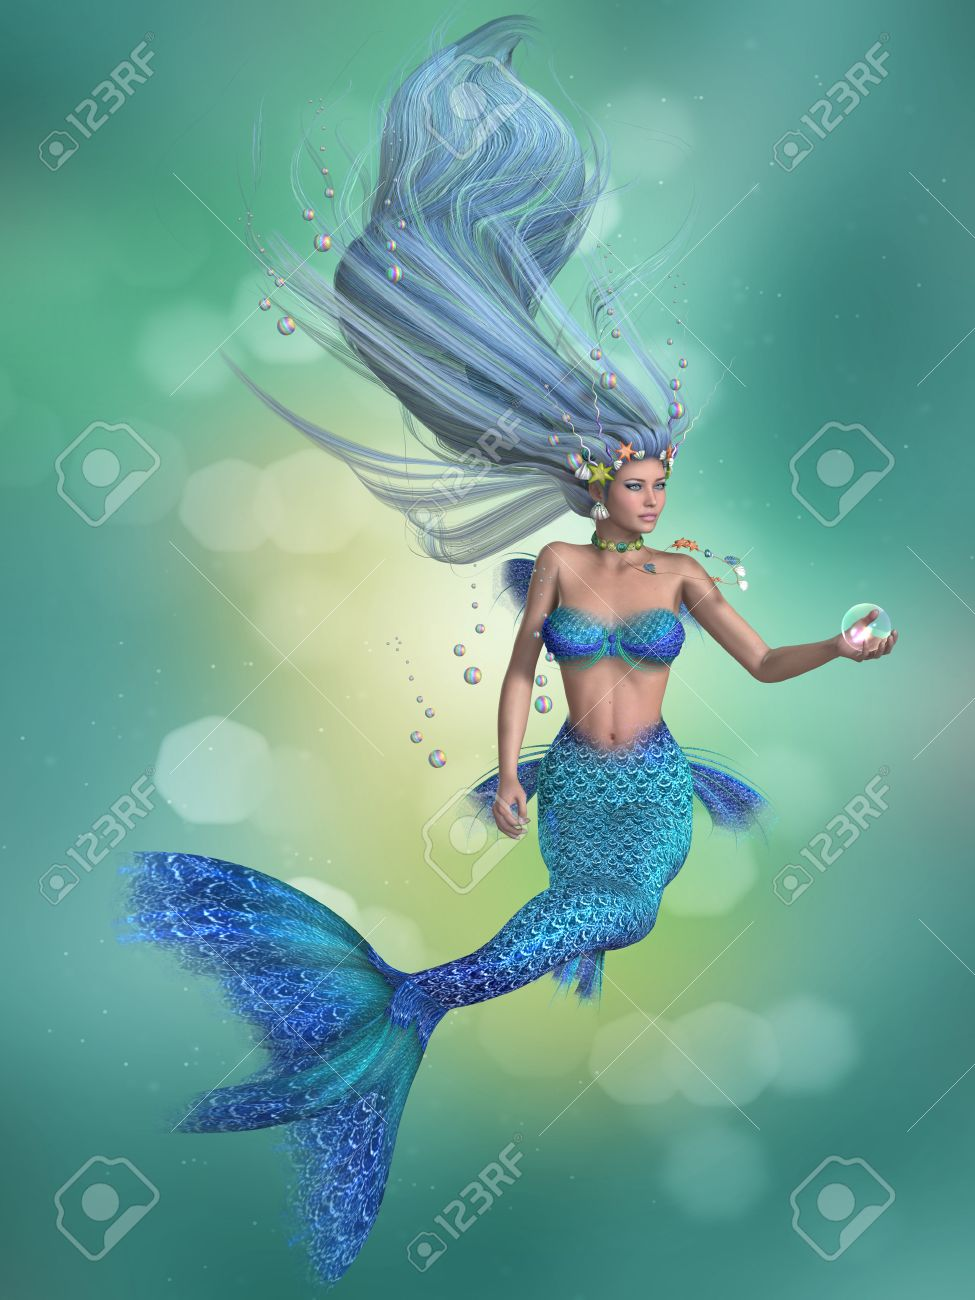 mermaid in blue a mermaid is a fantasy sea creature with the